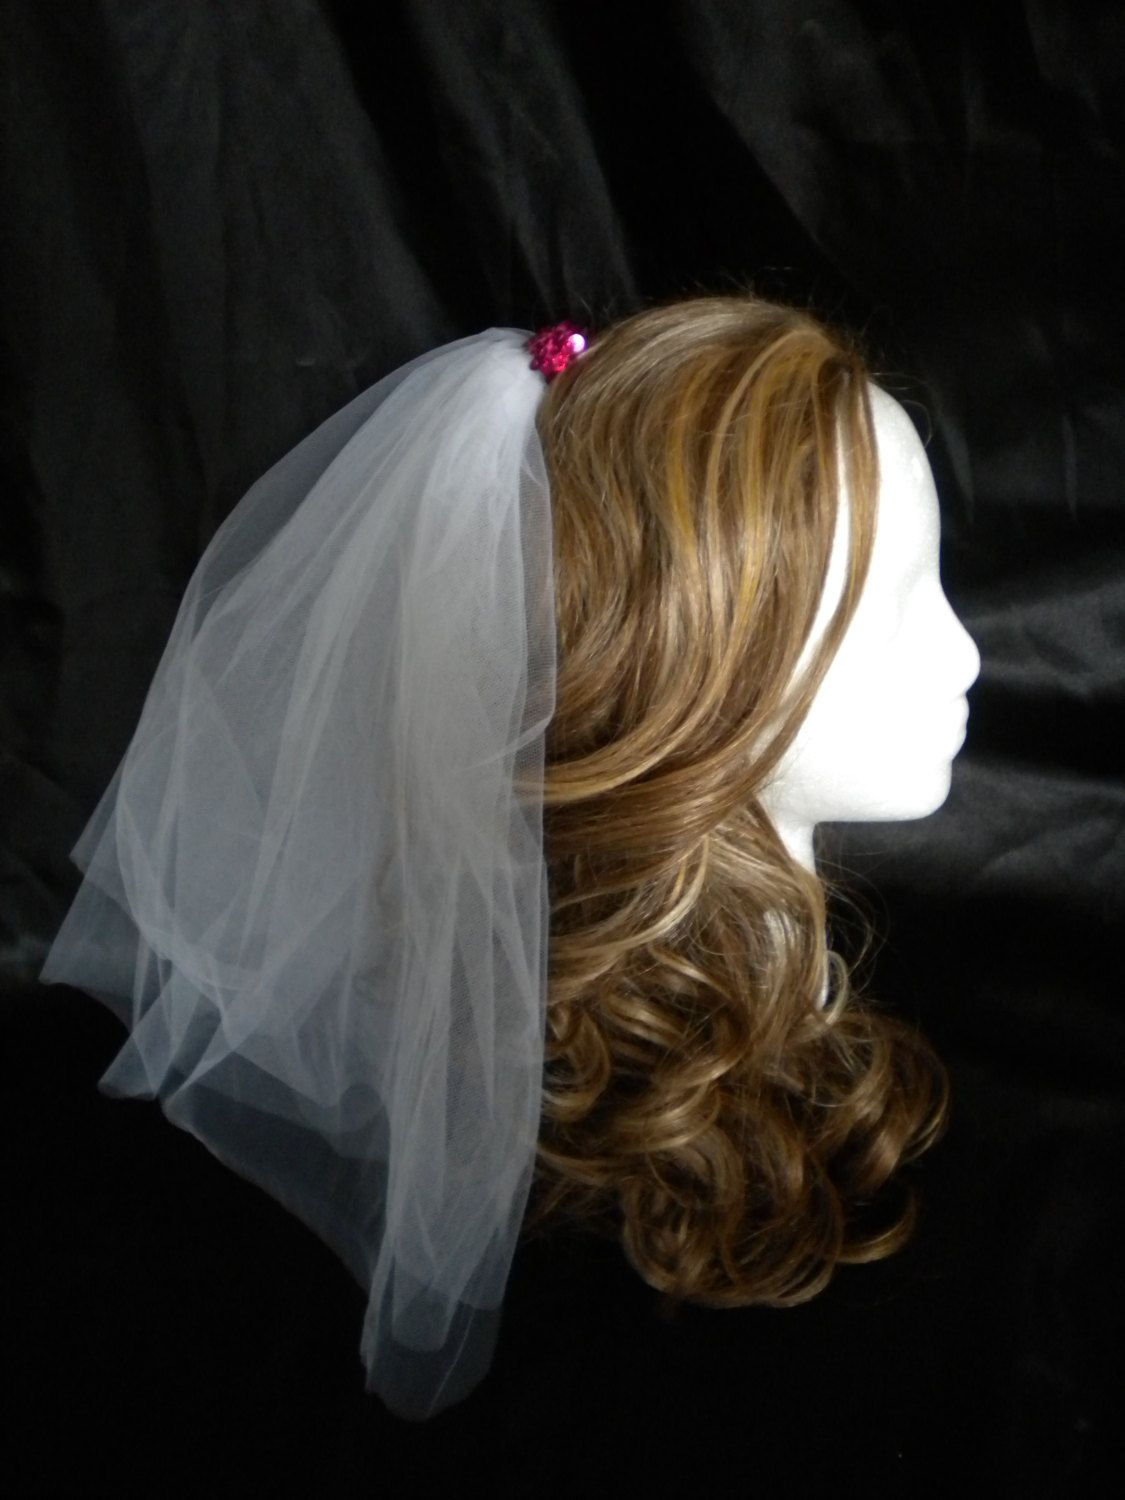 f272ac853a3 FOR ME  Bachelorette+Party+Veil+by+studiolmichelle+on+Etsy